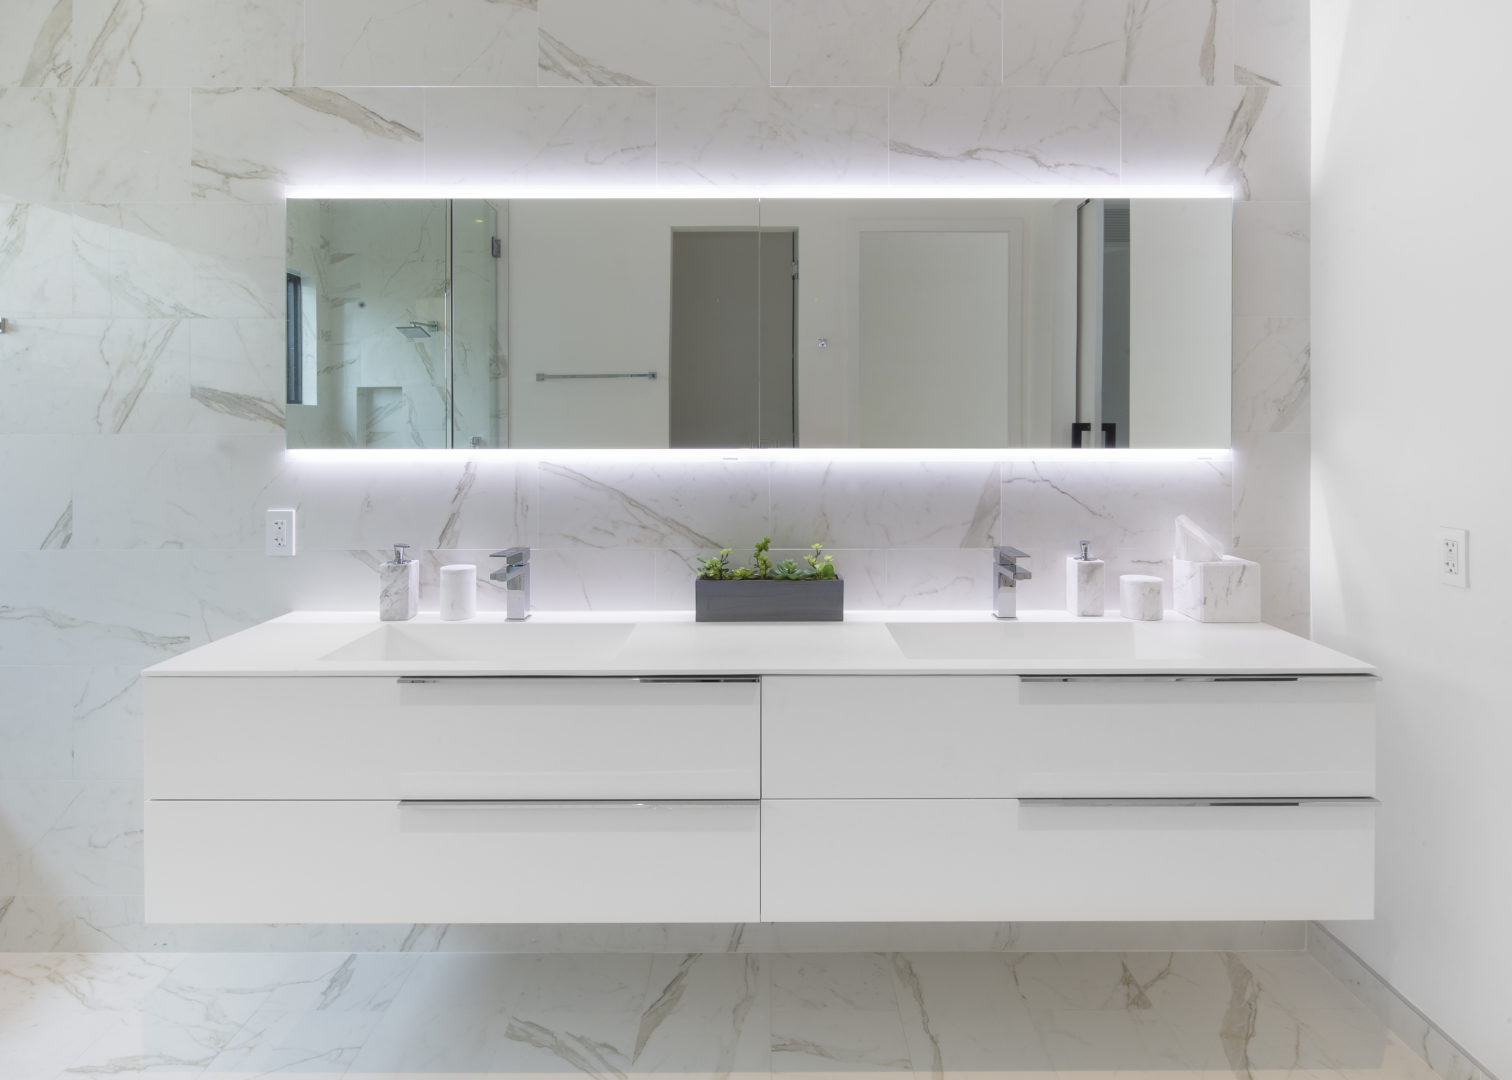 Skylake North Miami Beach Florida Construction Architecture Modern Outdoor master bathroom plumbing fixtures light mirror shower enclosure vanity window